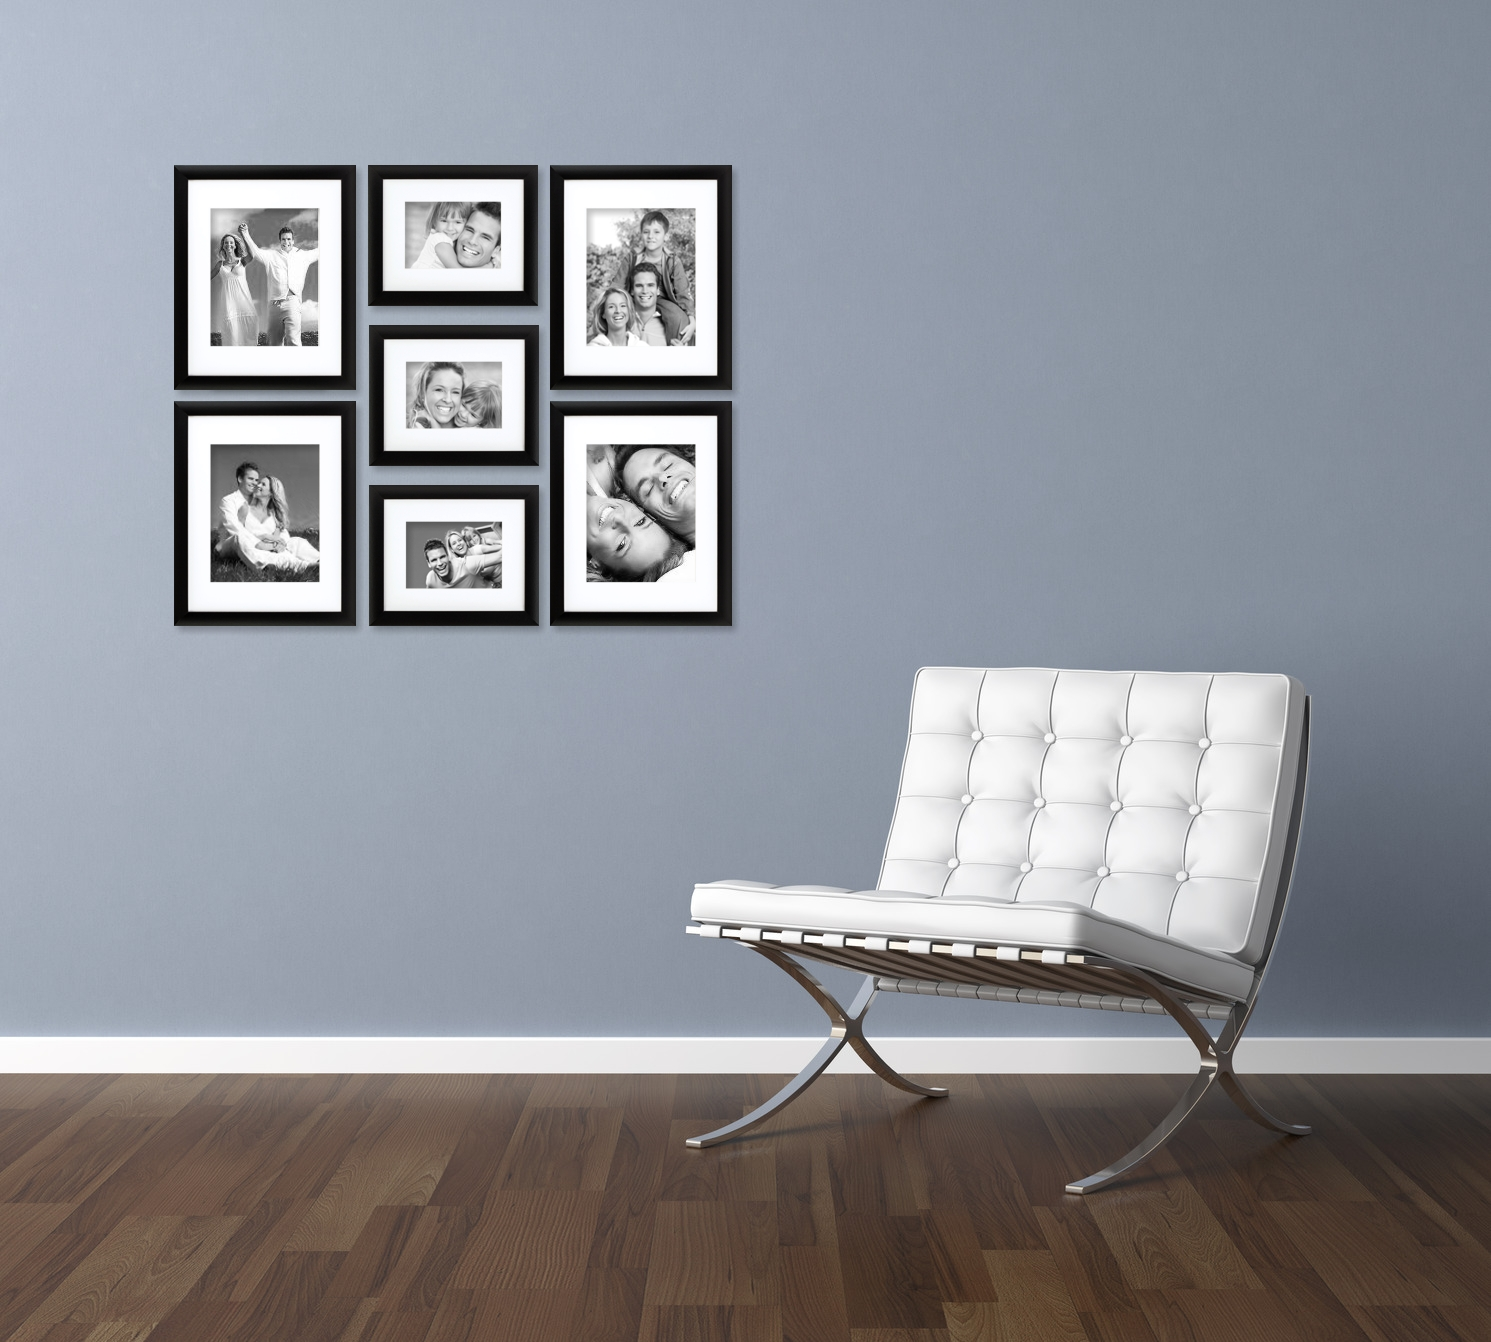 craig frames 7 piece black gallery wall frame set with glass white matting